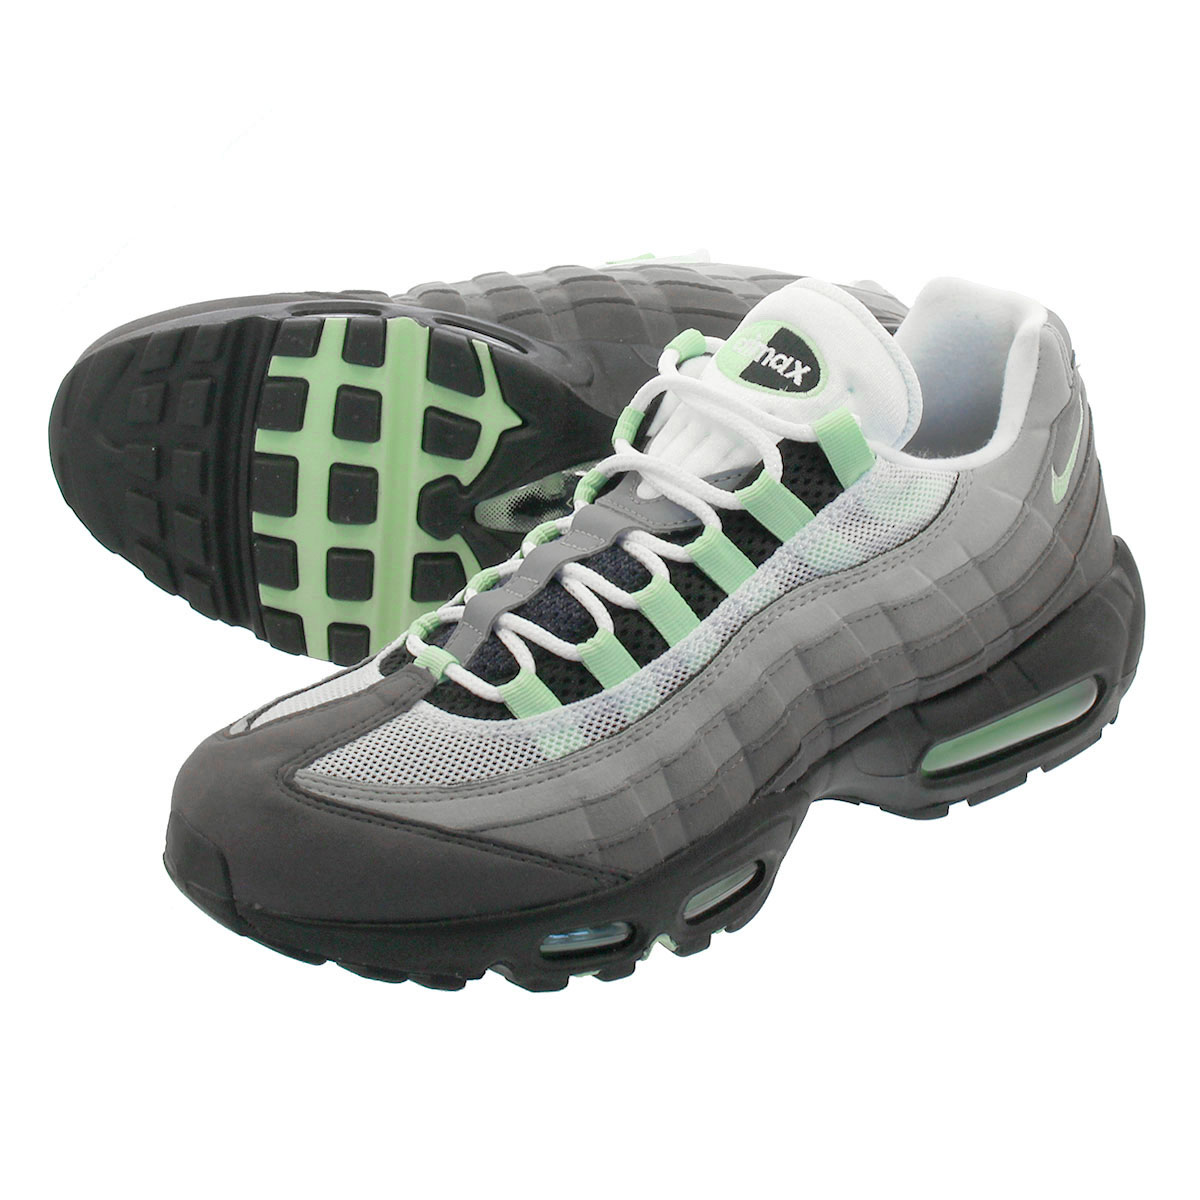 65e0cefd LOWTEX PLUS: NIKE AIR MAX 95 Kie Ney AMAX 95 WHITE/FRESH MINT ...